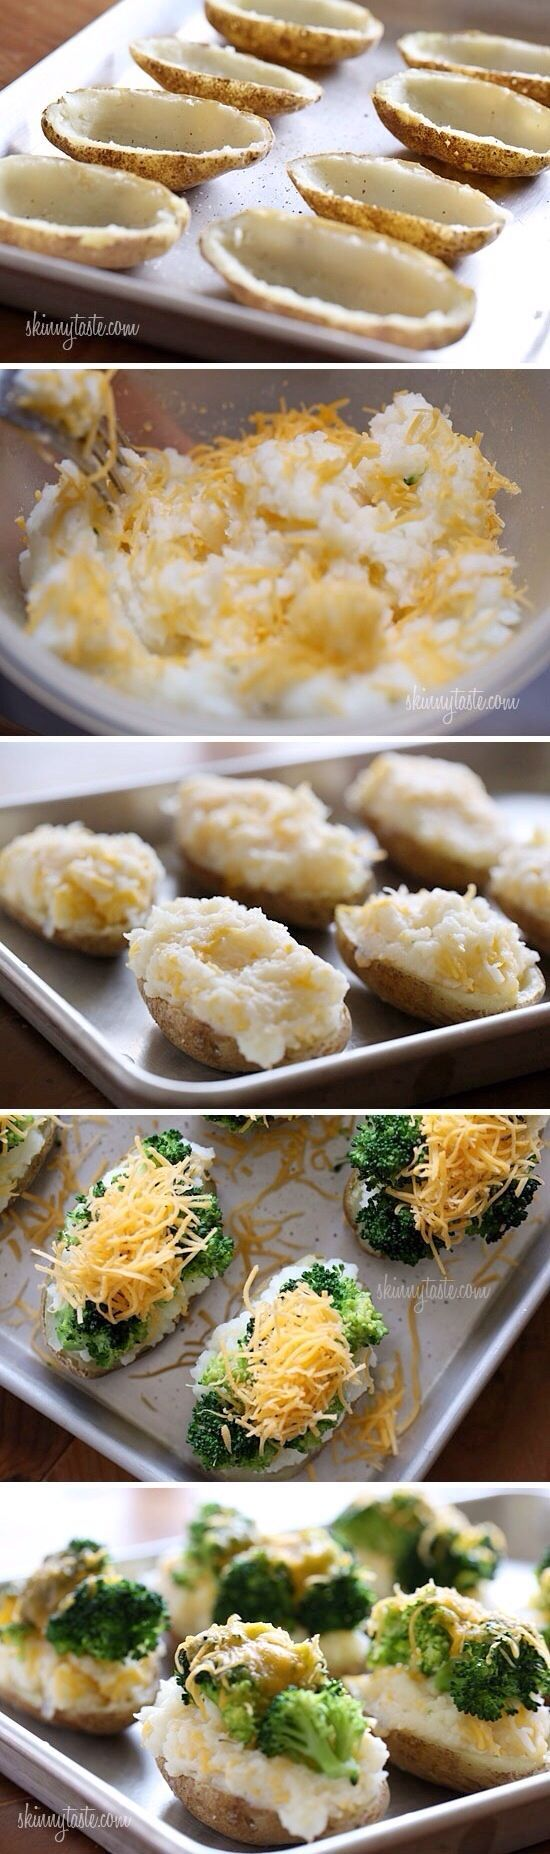 broccoli and cheese twice baked potatoes http://sulia.com/channel/recipes-cooking/f/61c6fc99-93aa-4062-a7a2-e82b741df1d8/?source=pin&action=share&btn=big&form_factor=mobile